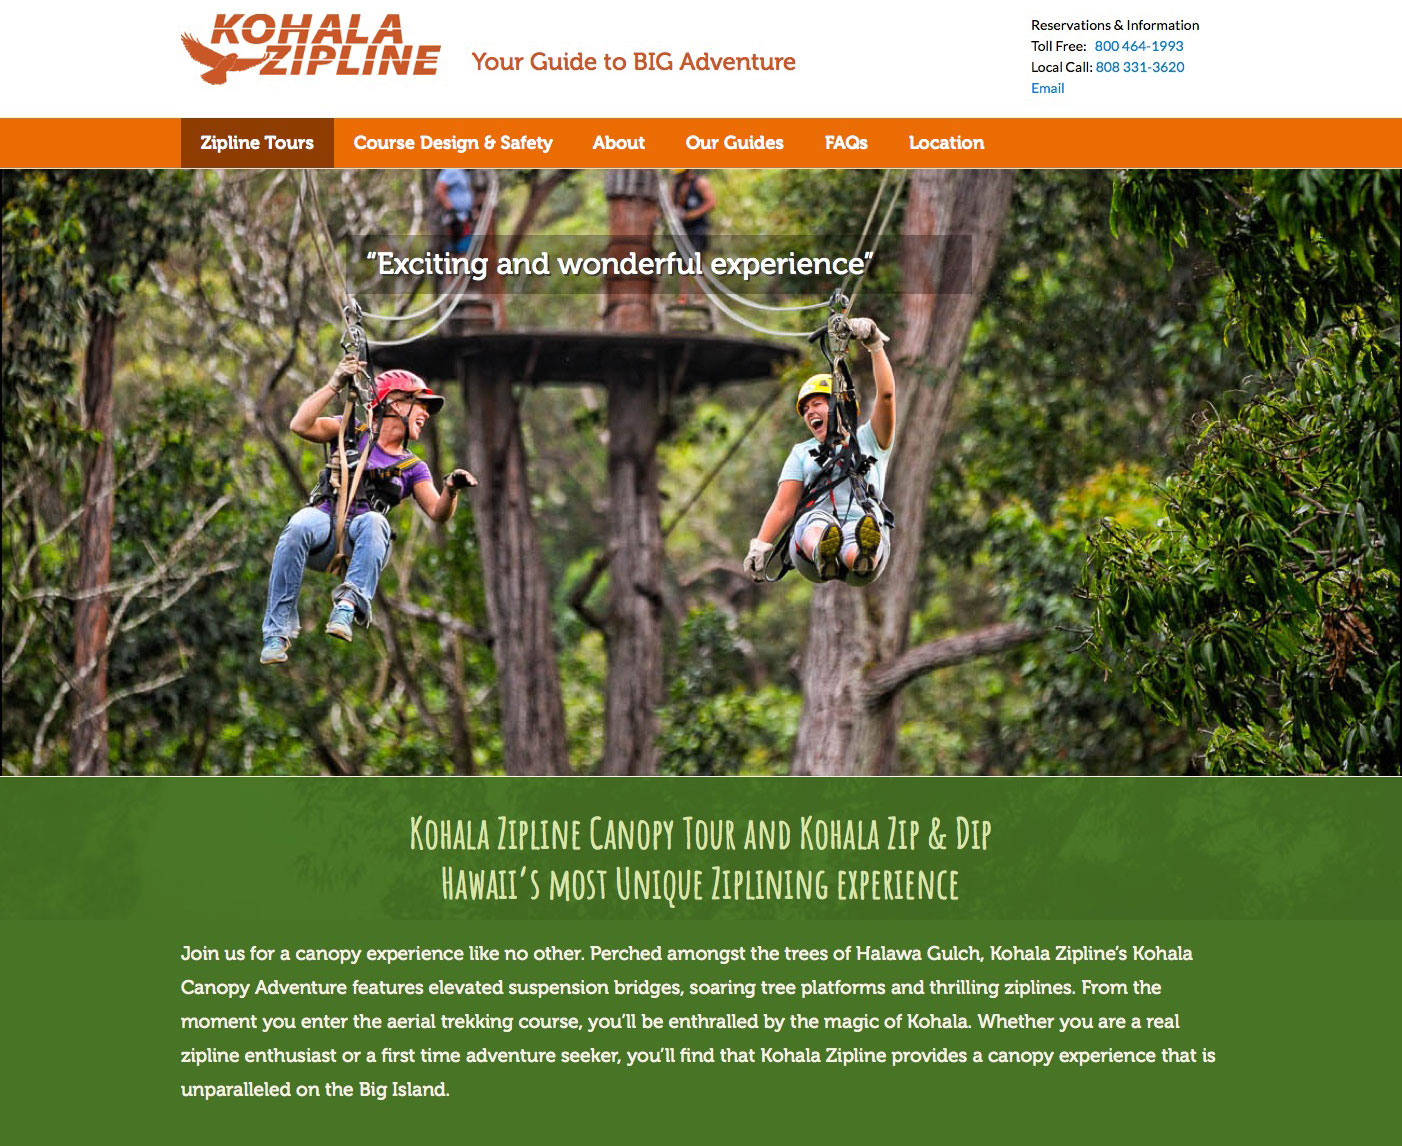 Kohala Zipline Website Wins Award!